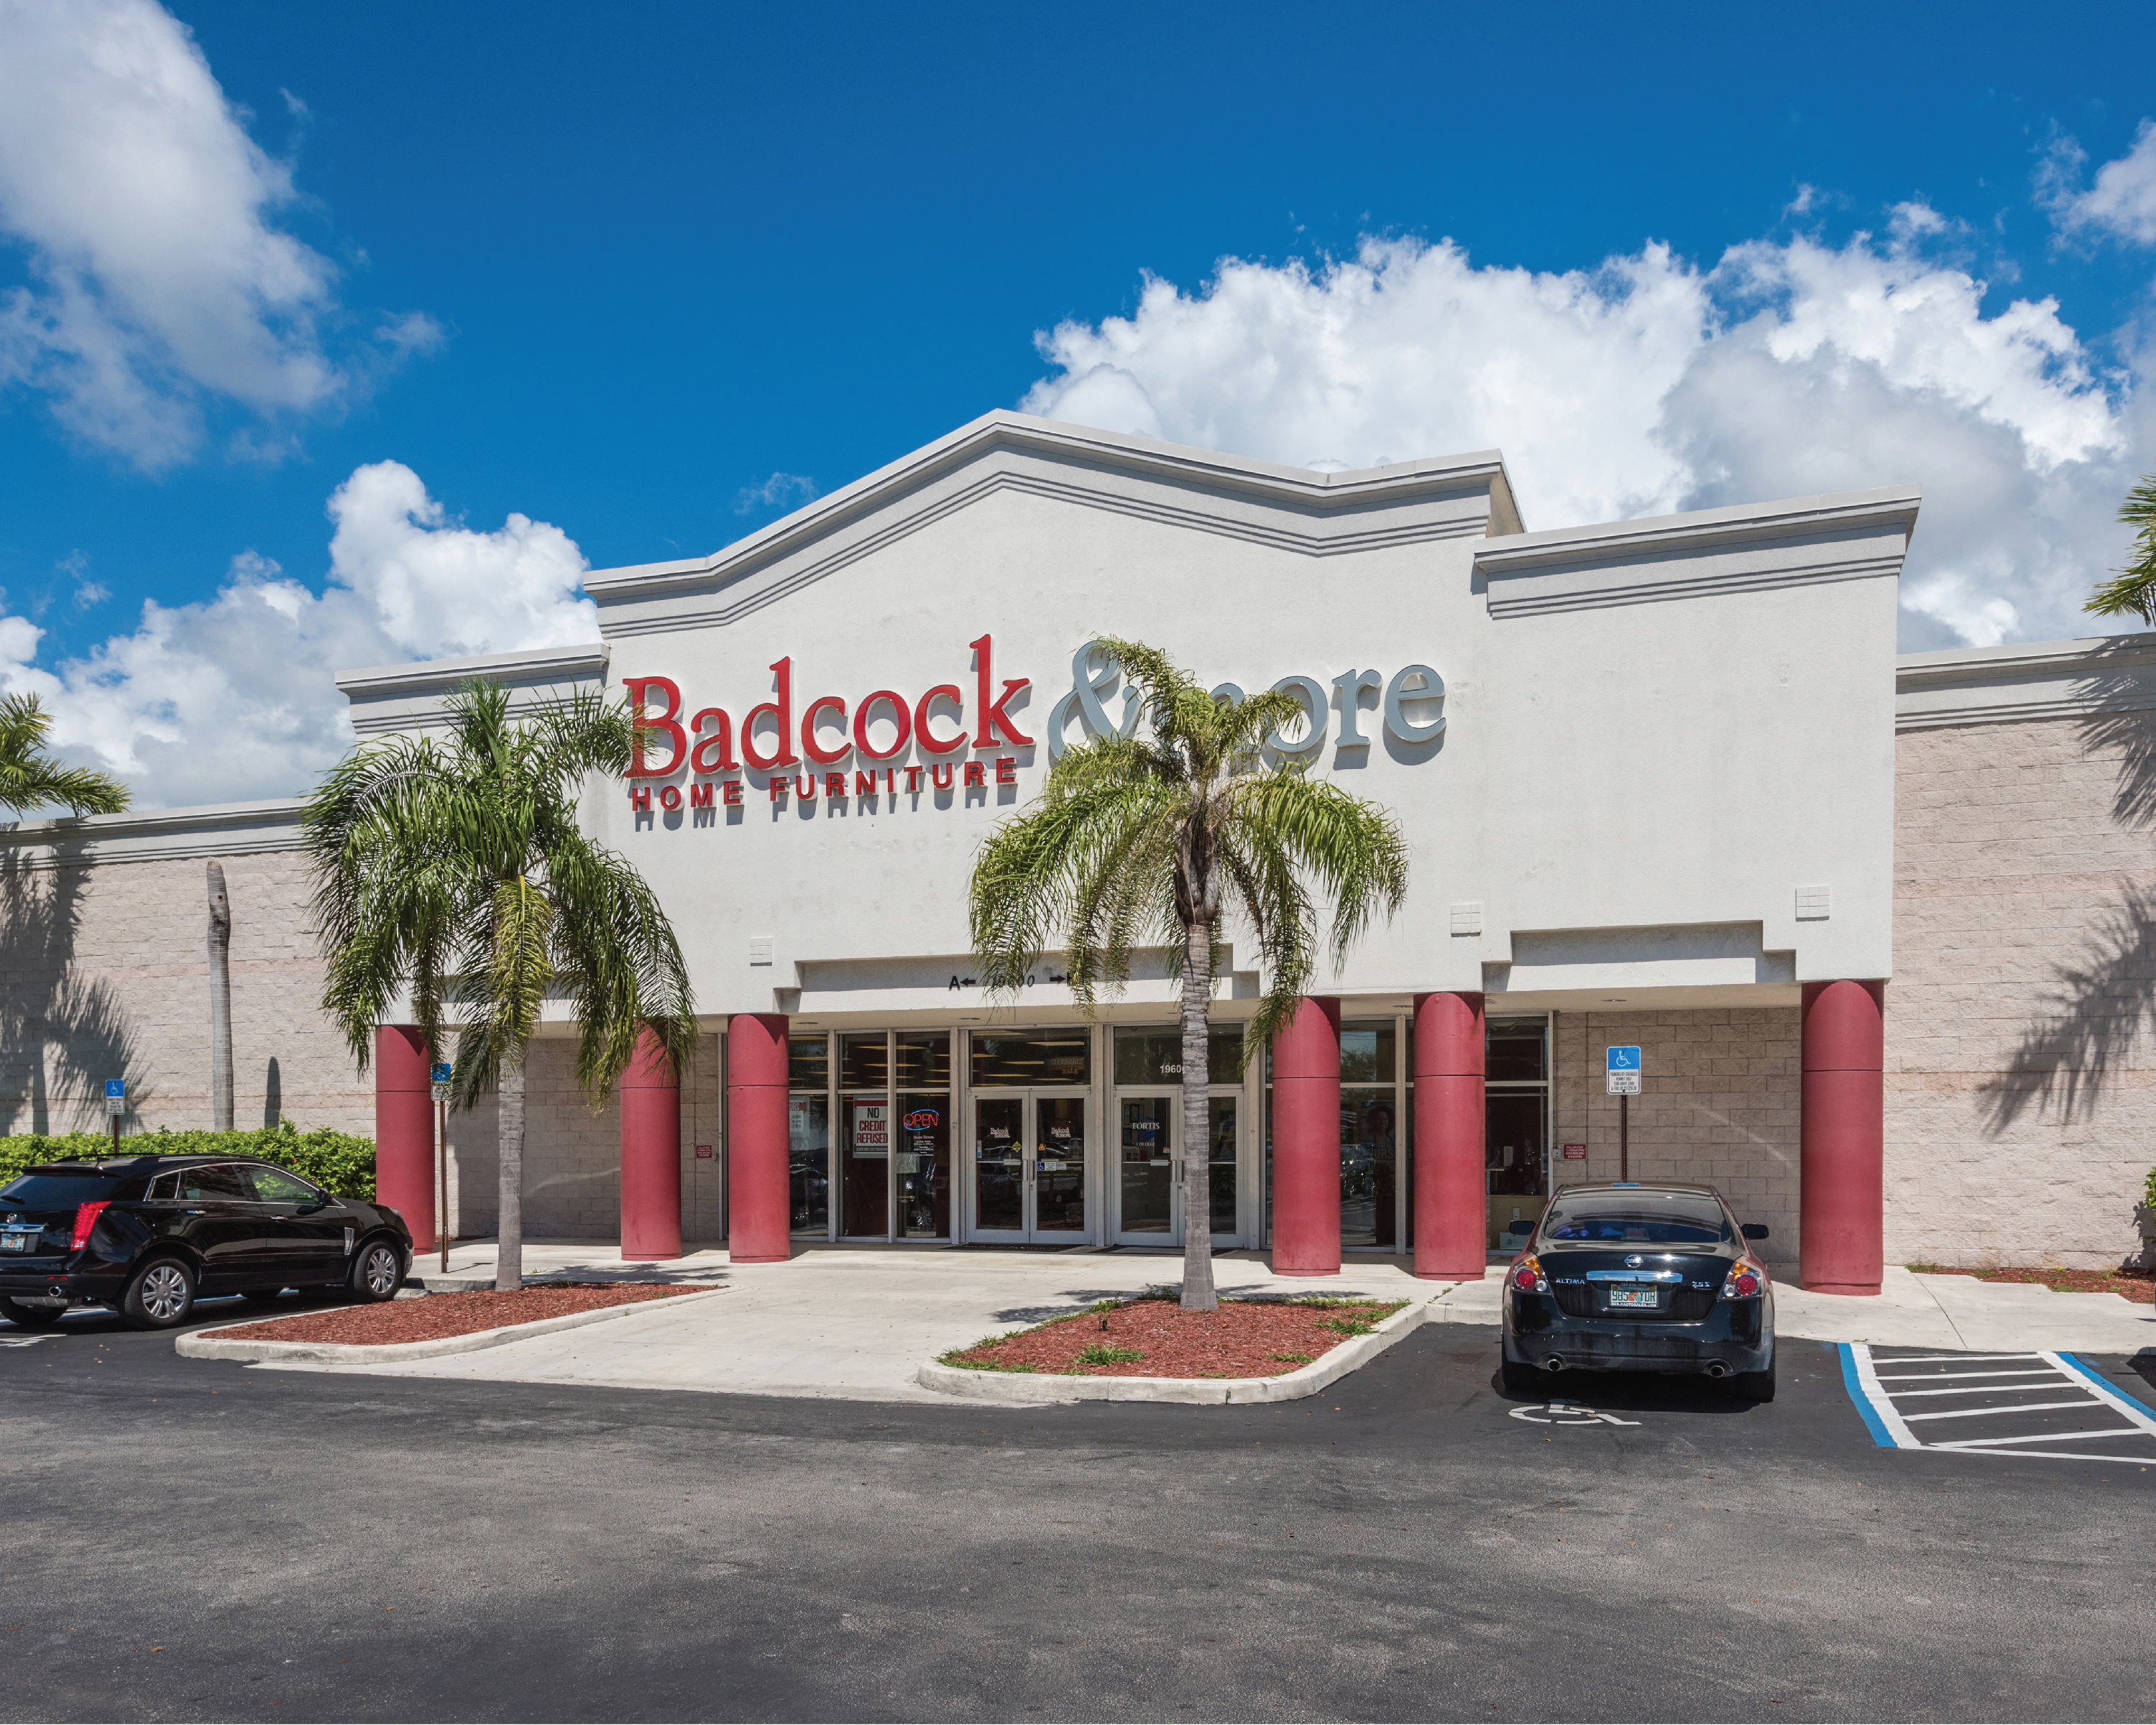 Badcock home furniture more miami gardens fl 33056 Badcock home furniture more greenwood sc